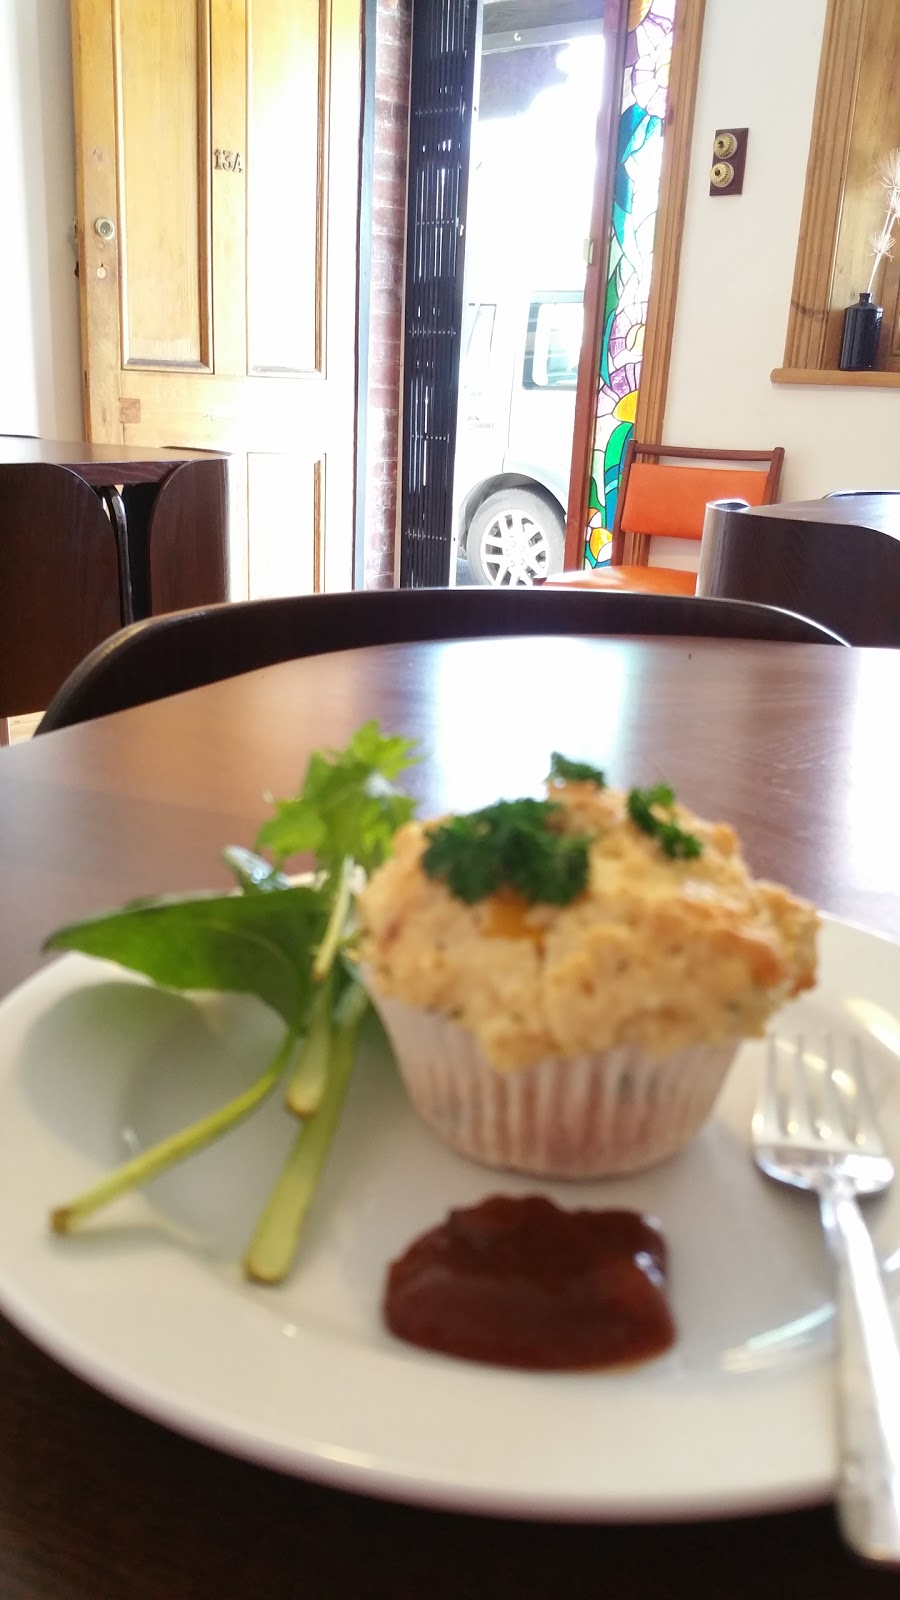 This Fine Day   cafe   13 Welbourne St, Mitcham SA 5062, Australia   0413293542 OR +61 413 293 542